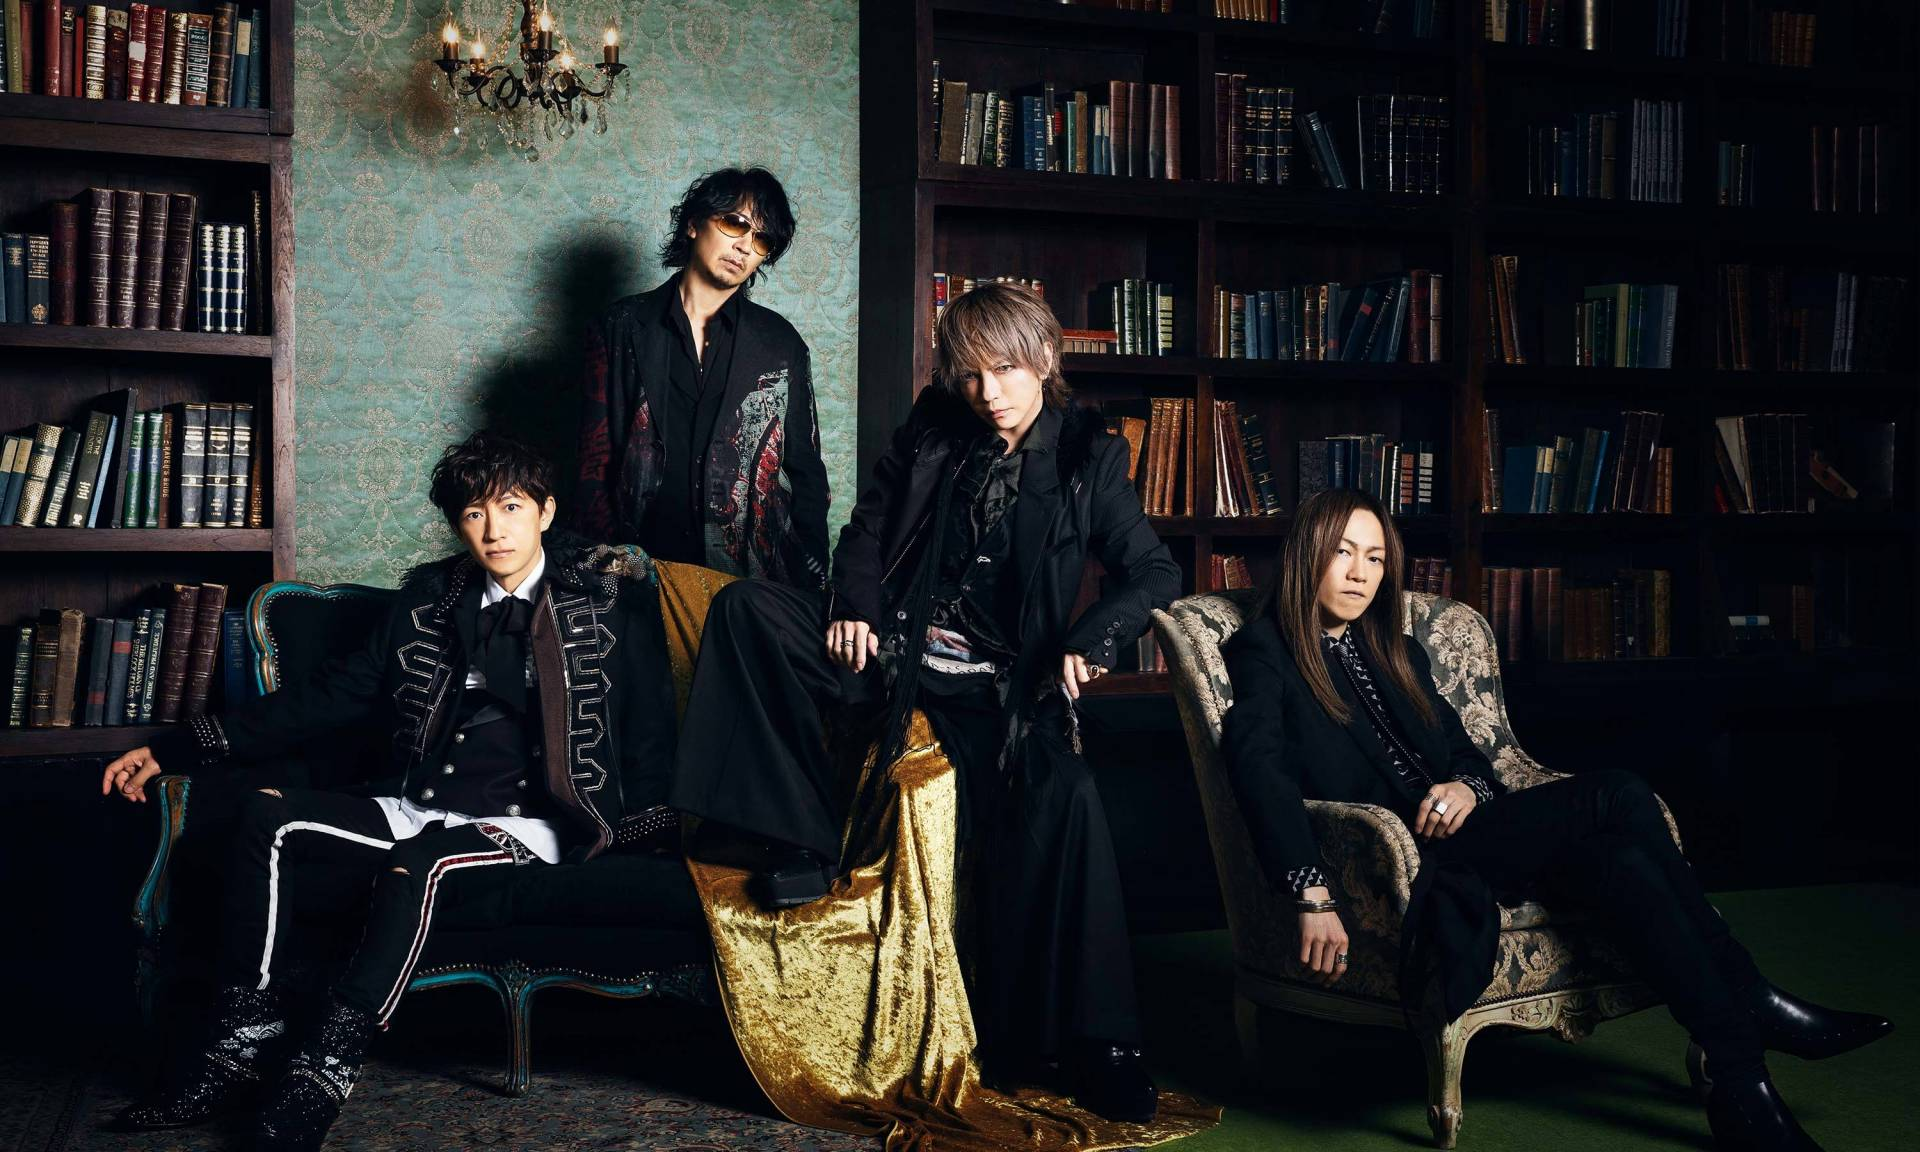 L'Arc~en~Ciel's first new song in four and a half years will hit digital platforms on May 31st!!